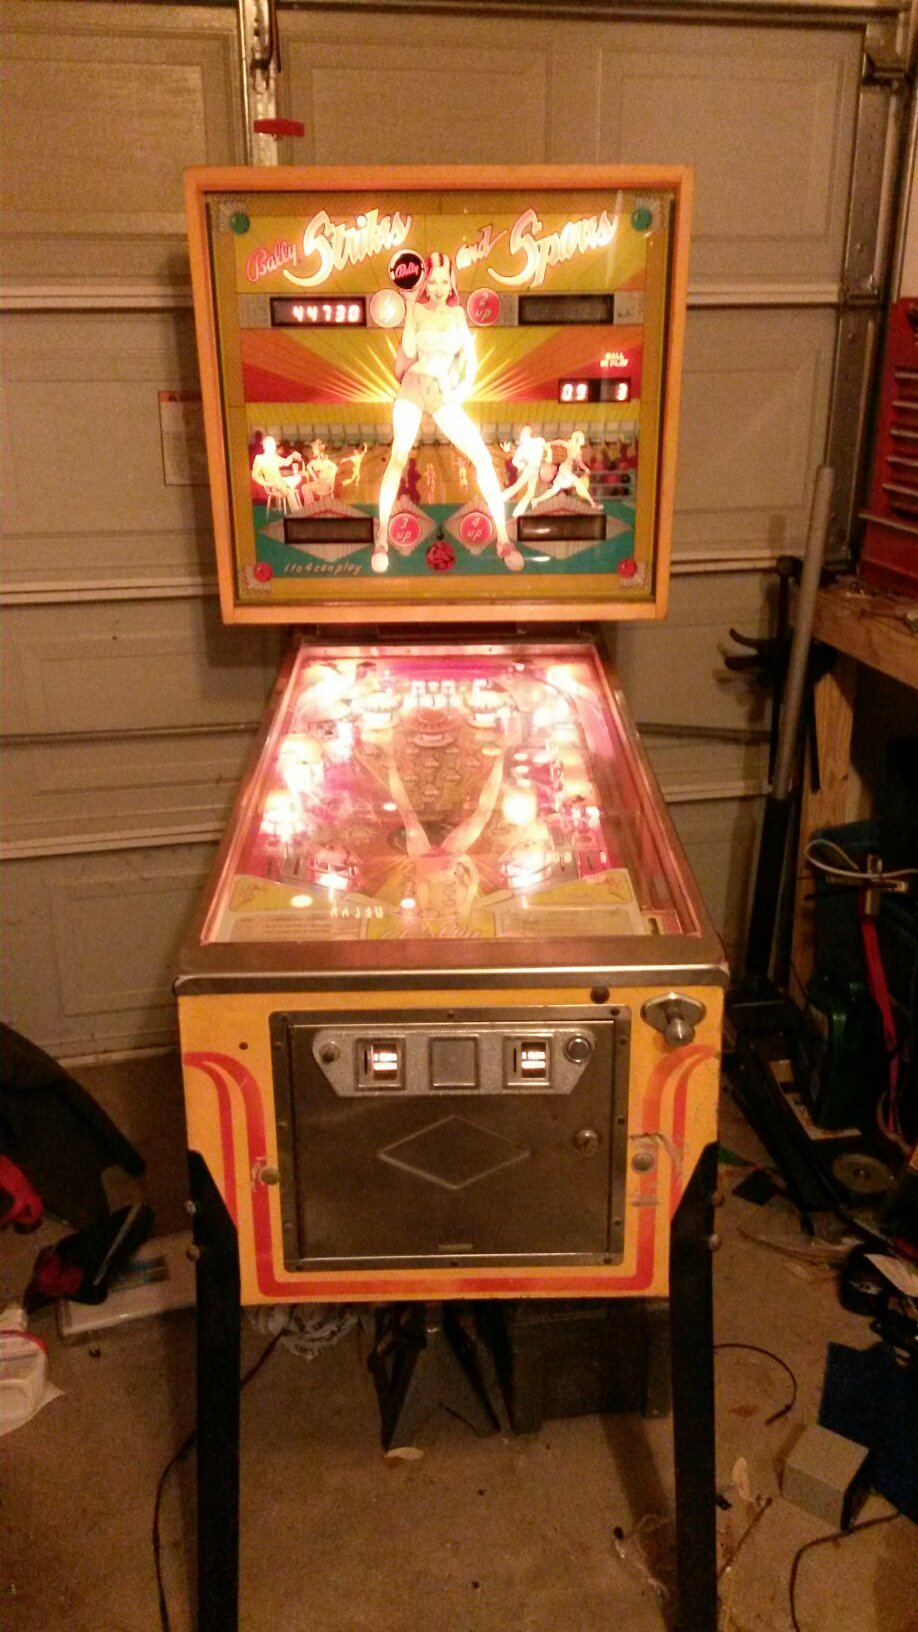 Bally Strikes And Spares Pinball Machine For Sale In San